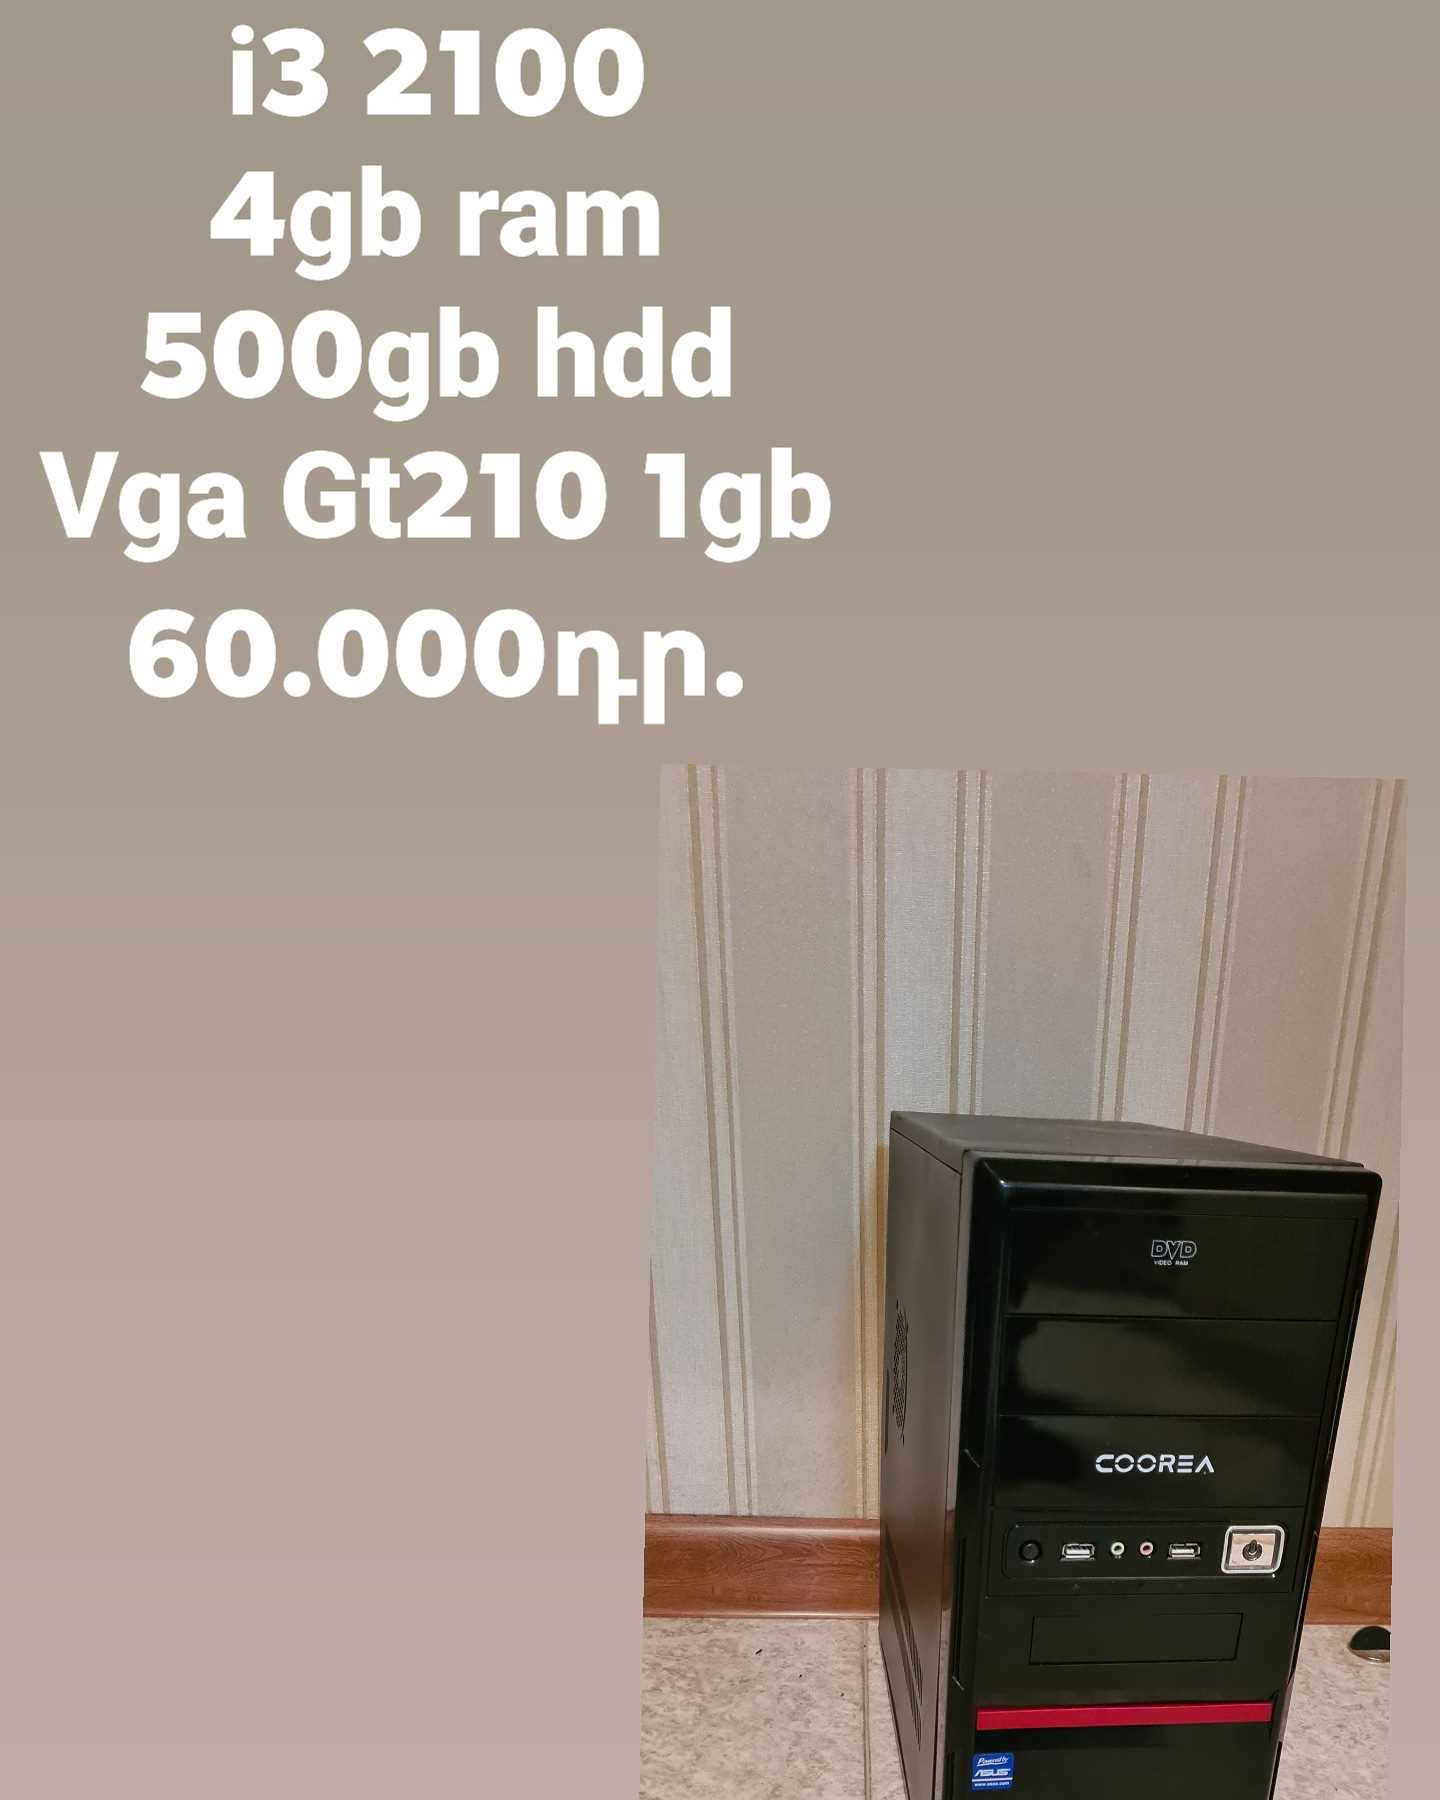 Համակարգիչ i3 2100,4gb ram,500gb hdd,1gb vga